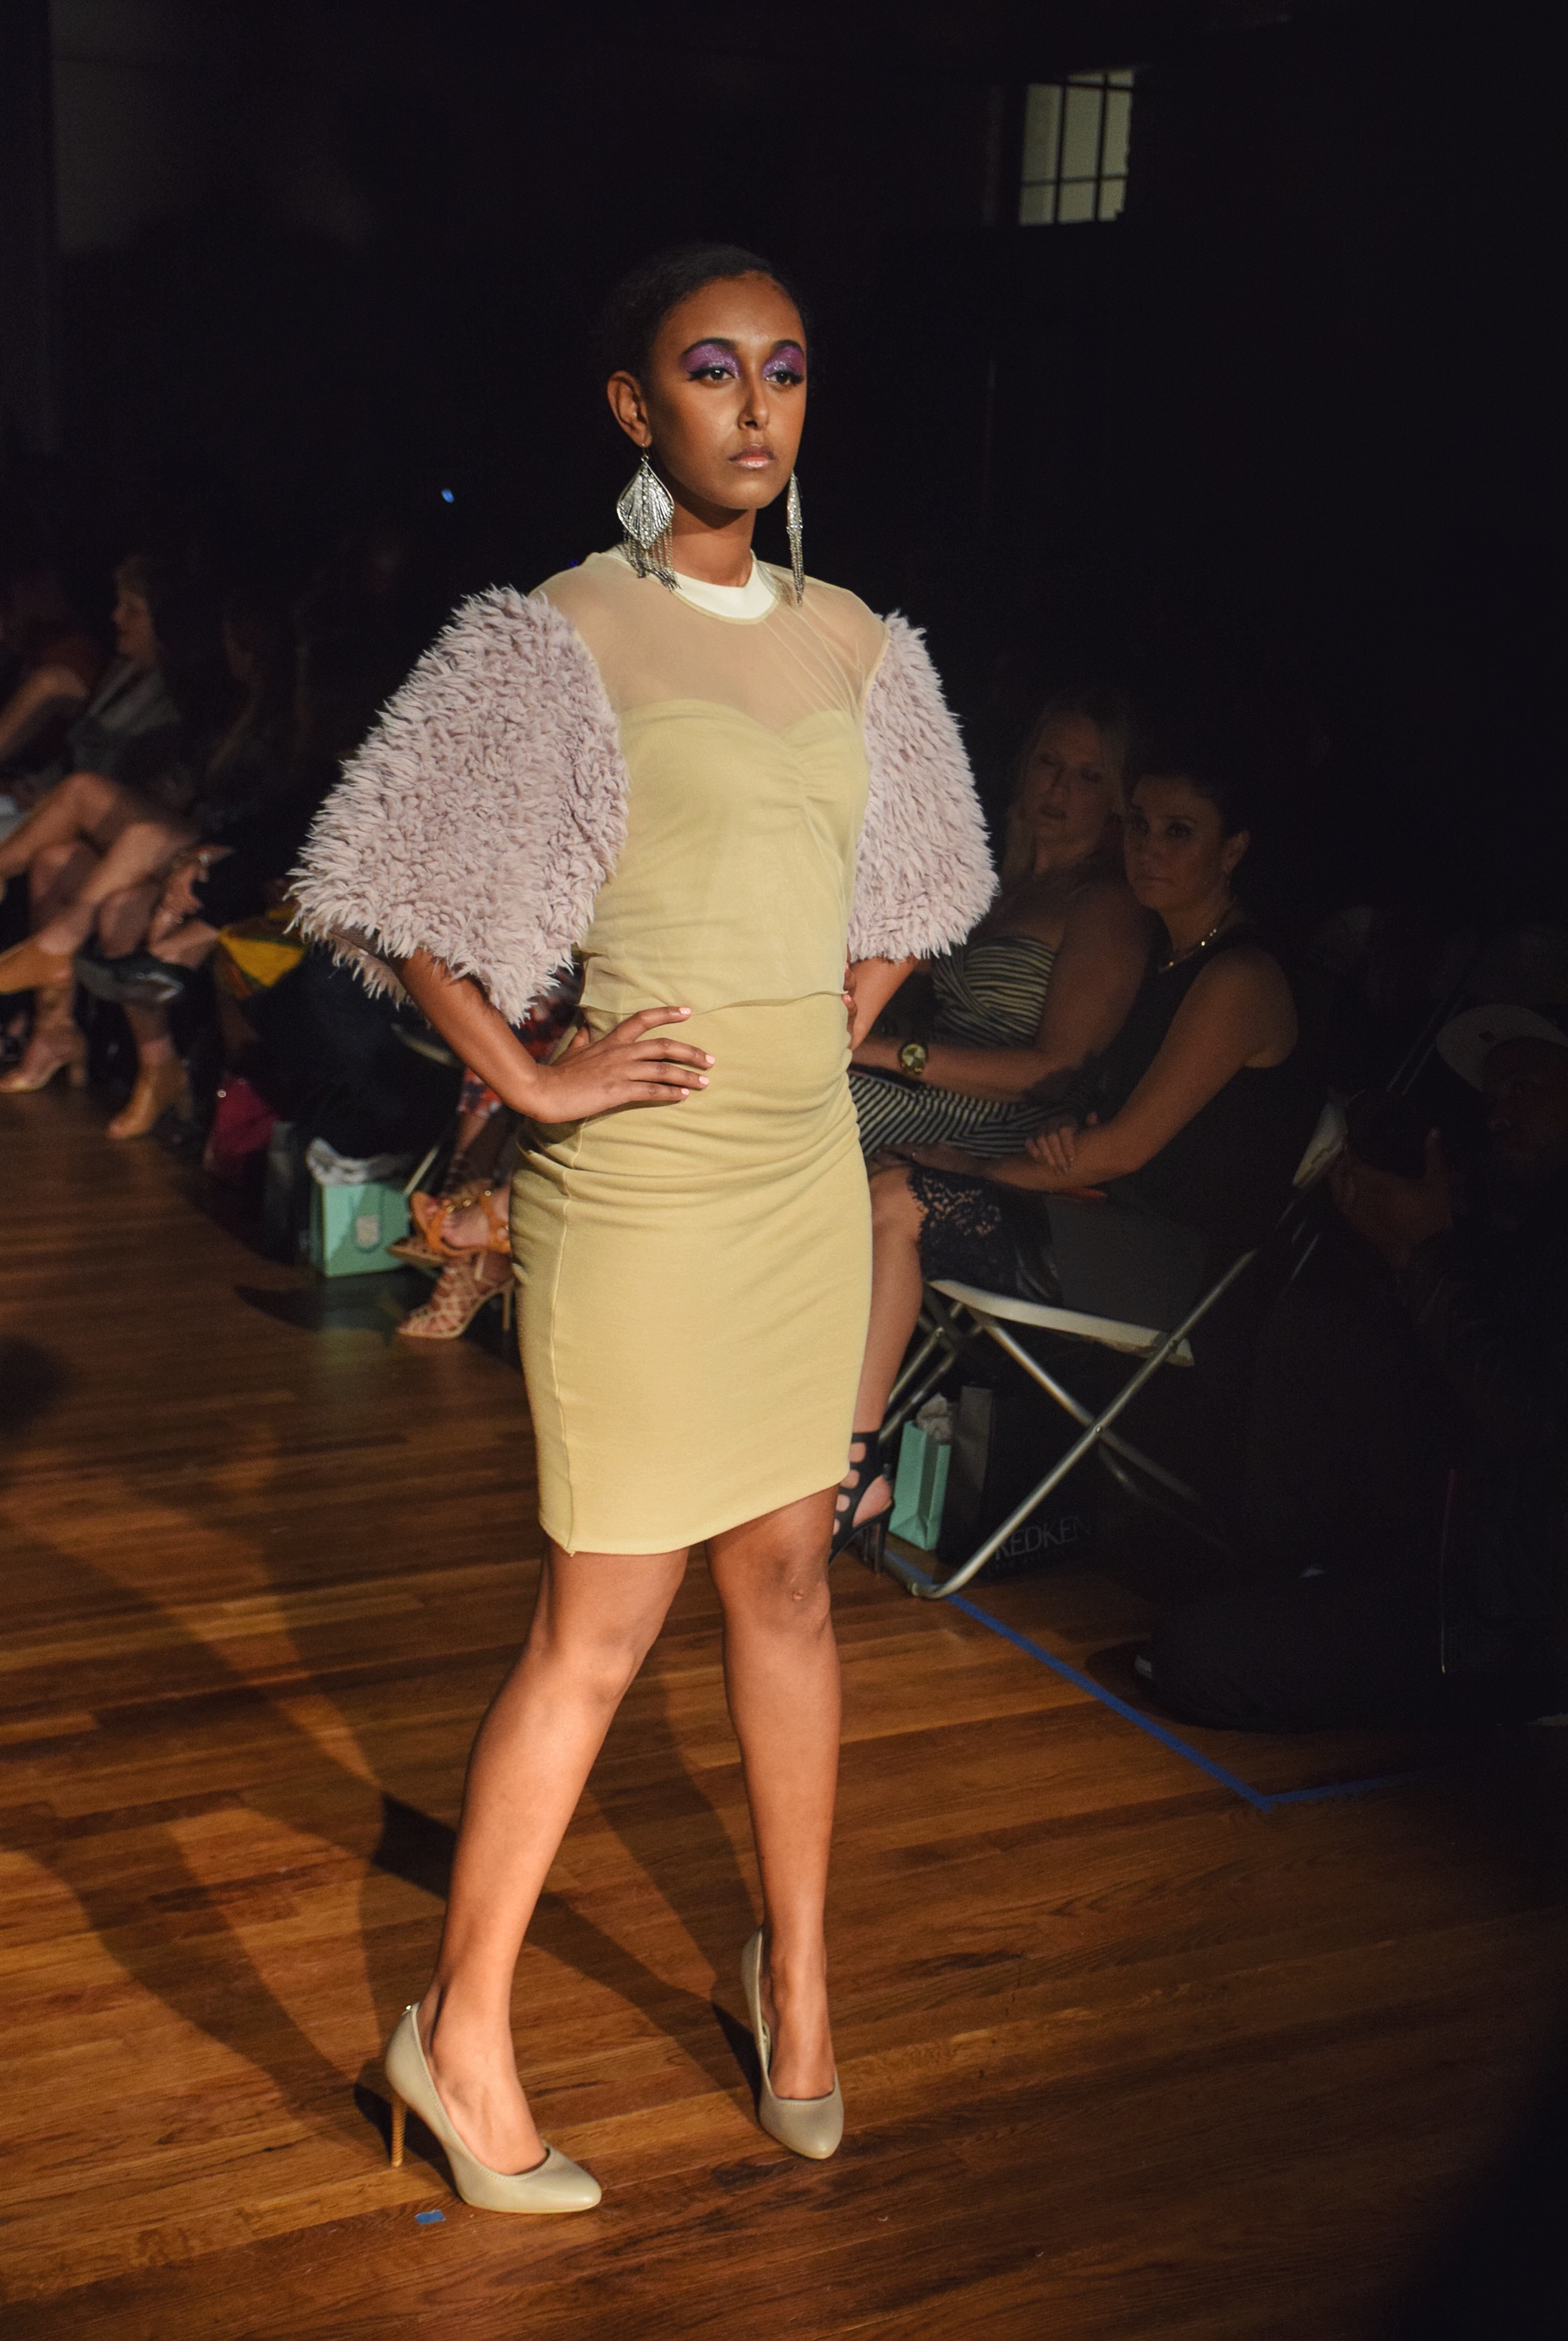 LaPosh by India Watson played with sheer and teddy fur accents on formal wear adding a playful edge.